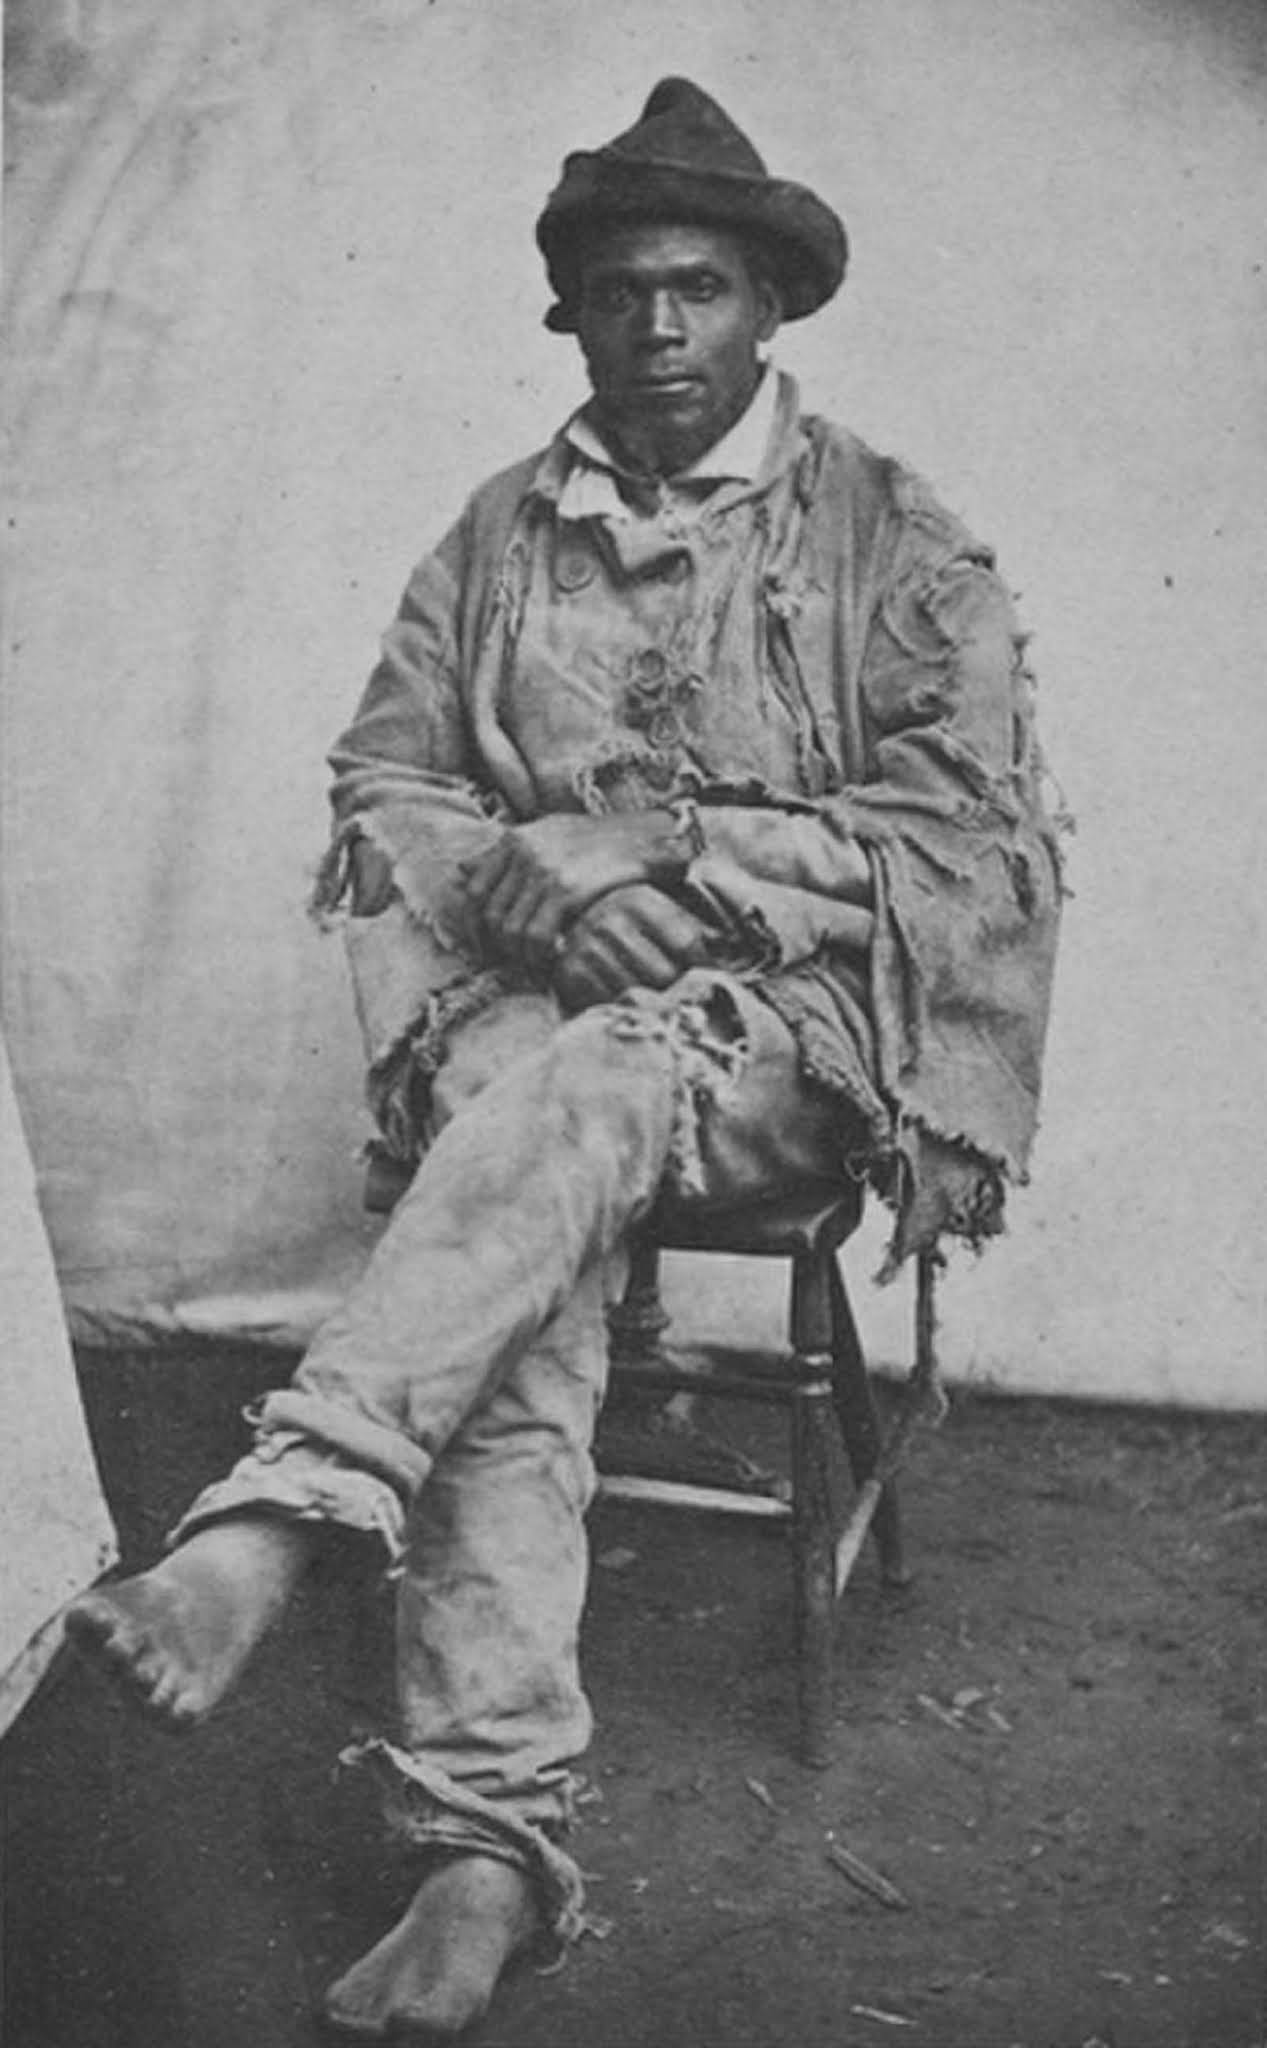 Gordon in 1863, just after he reached a Union Army camp in Baton Rouge, Louisiana.